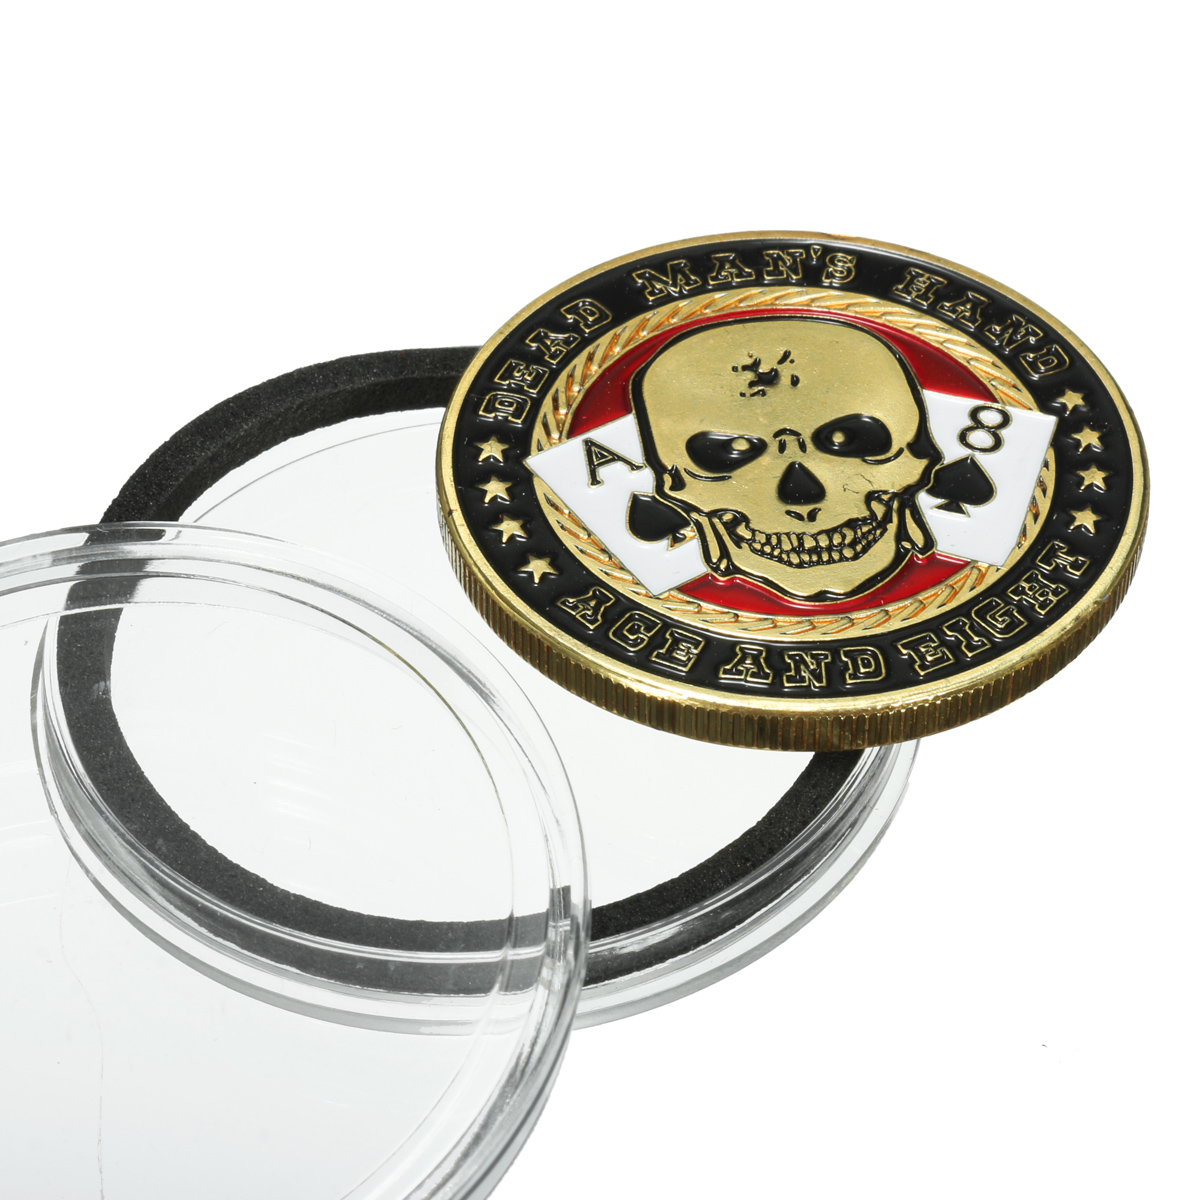 TEXAS Poker Holder Coin Card Guard Cards Chip Cover Protector+Case